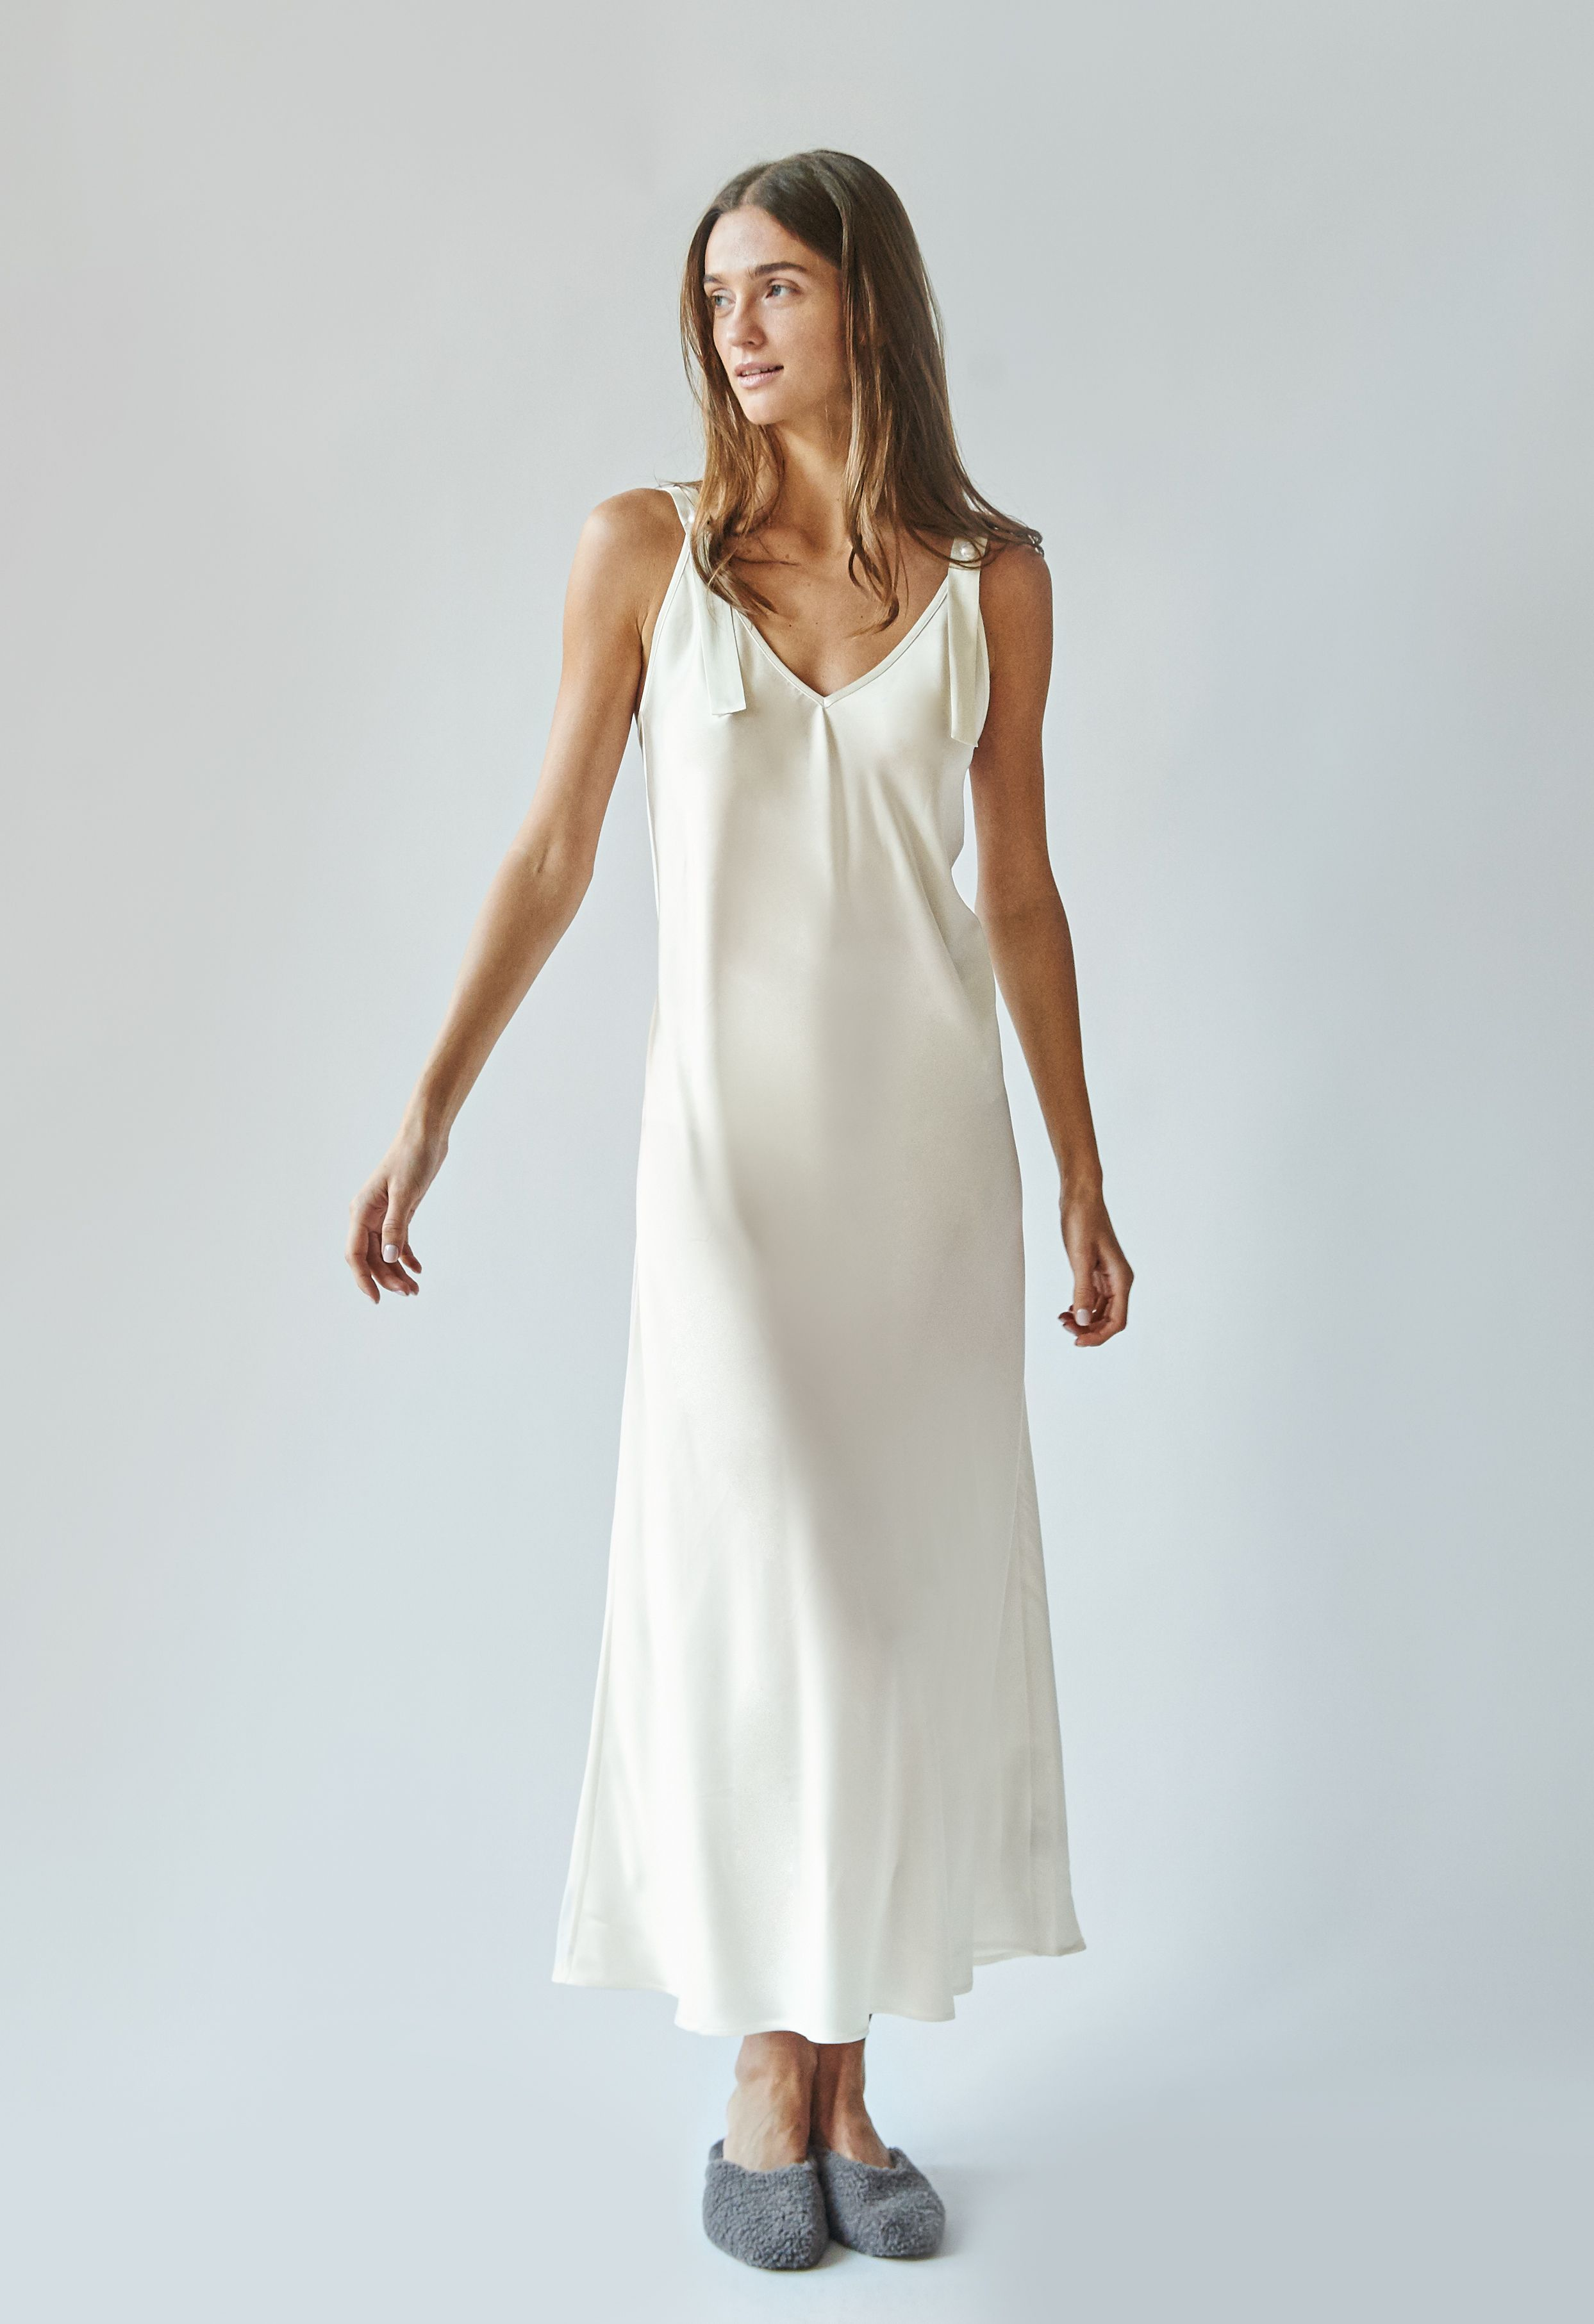 White Camellia Silk Slip Dress With Pearls Slip Dress Silk Slip Dress Dresses [ 3627 x 2487 Pixel ]